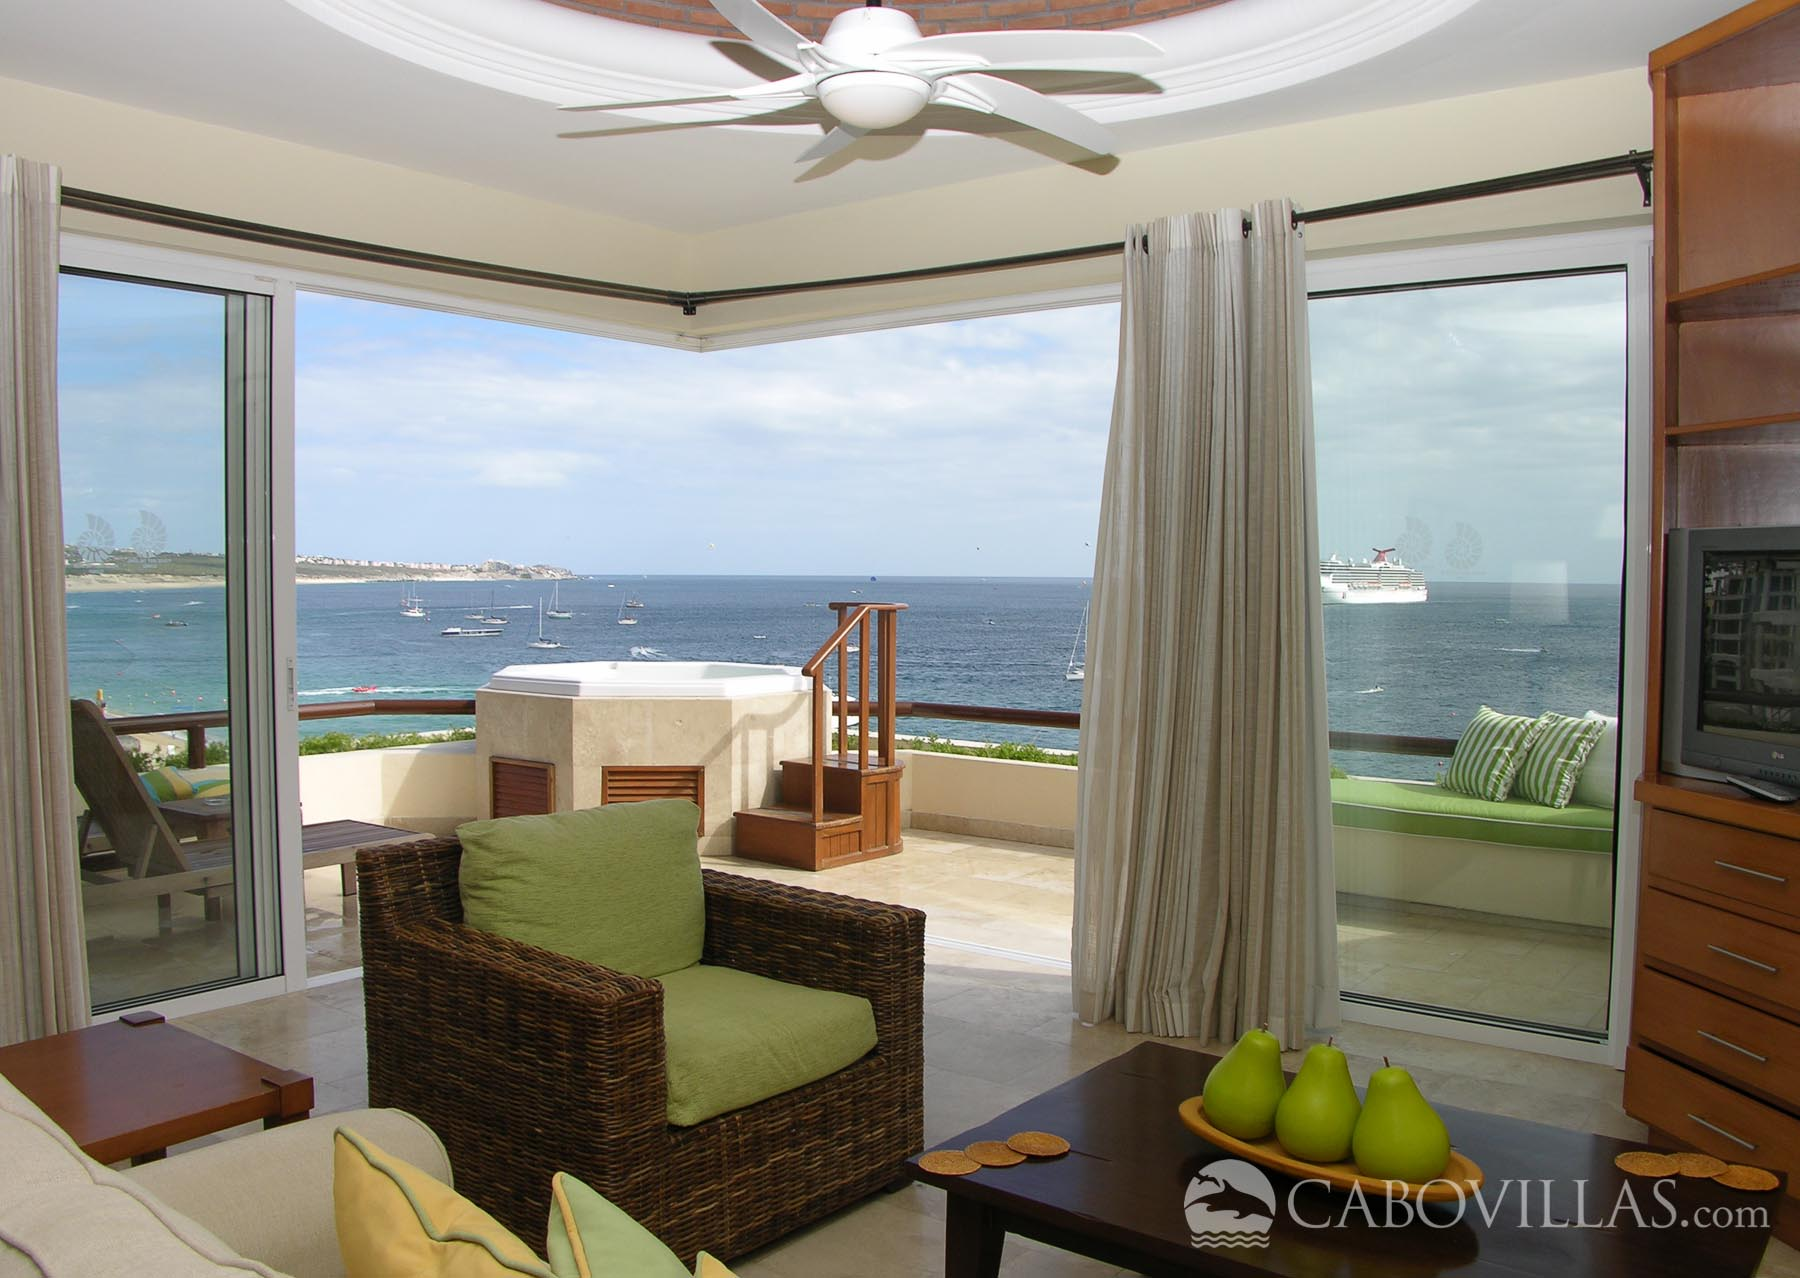 Cabo Villas Beach Resort 5 Bedroom Oceanfront Penthouse